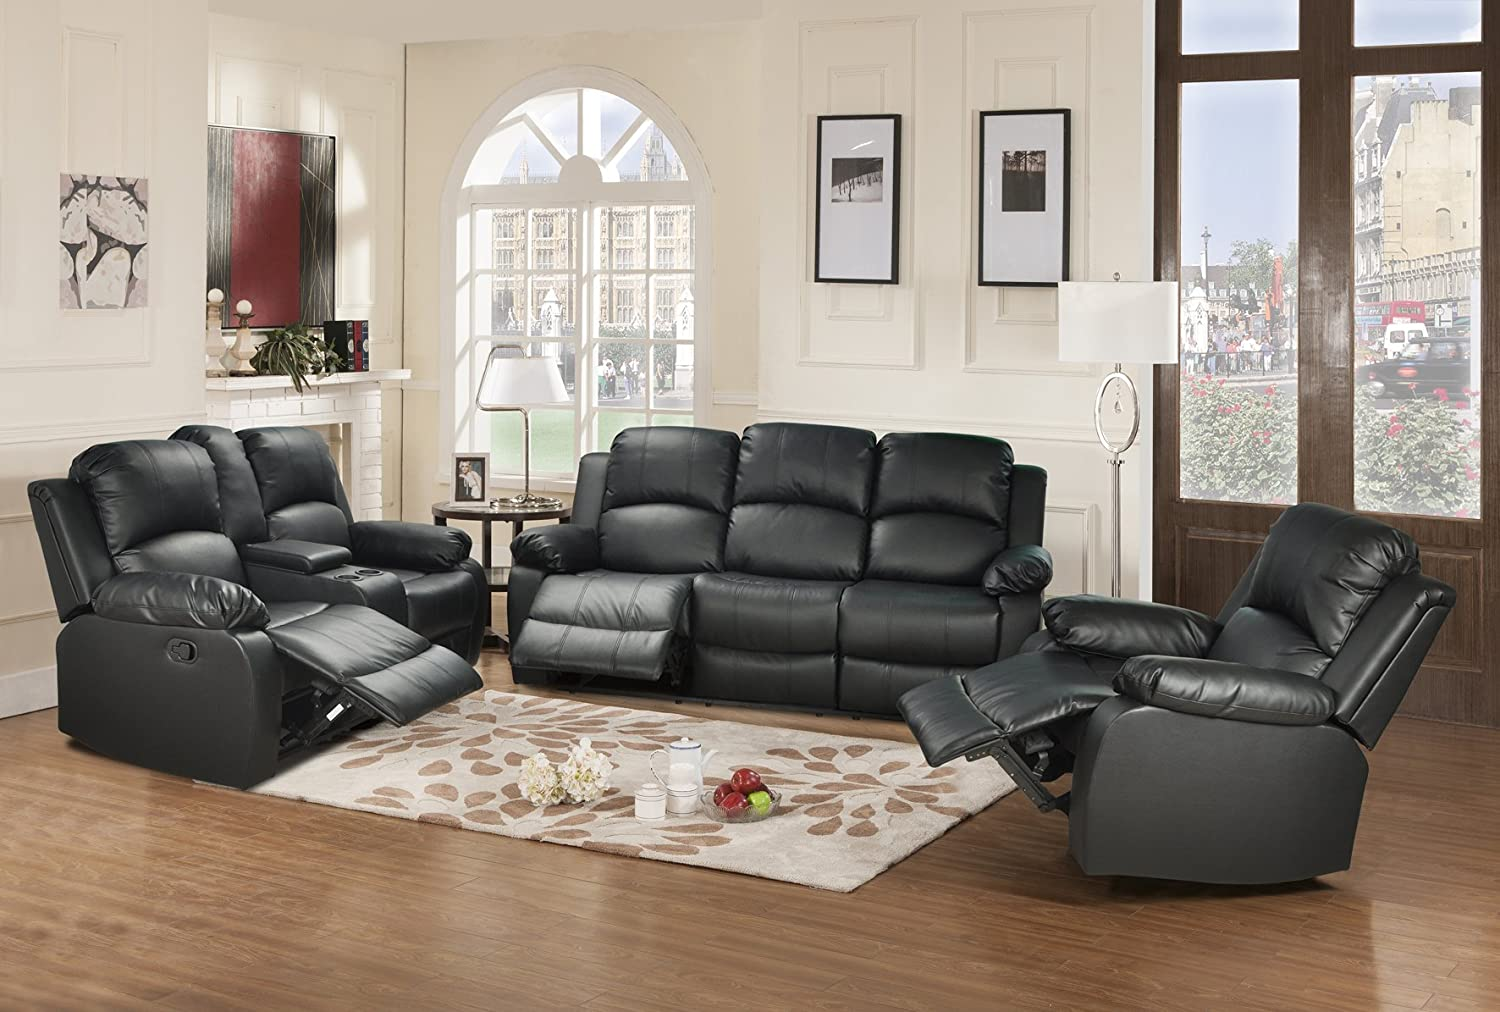 Amazon.com: Beverly Furniture 3 Piece Leather Sofa/Loveseat/Chair ...